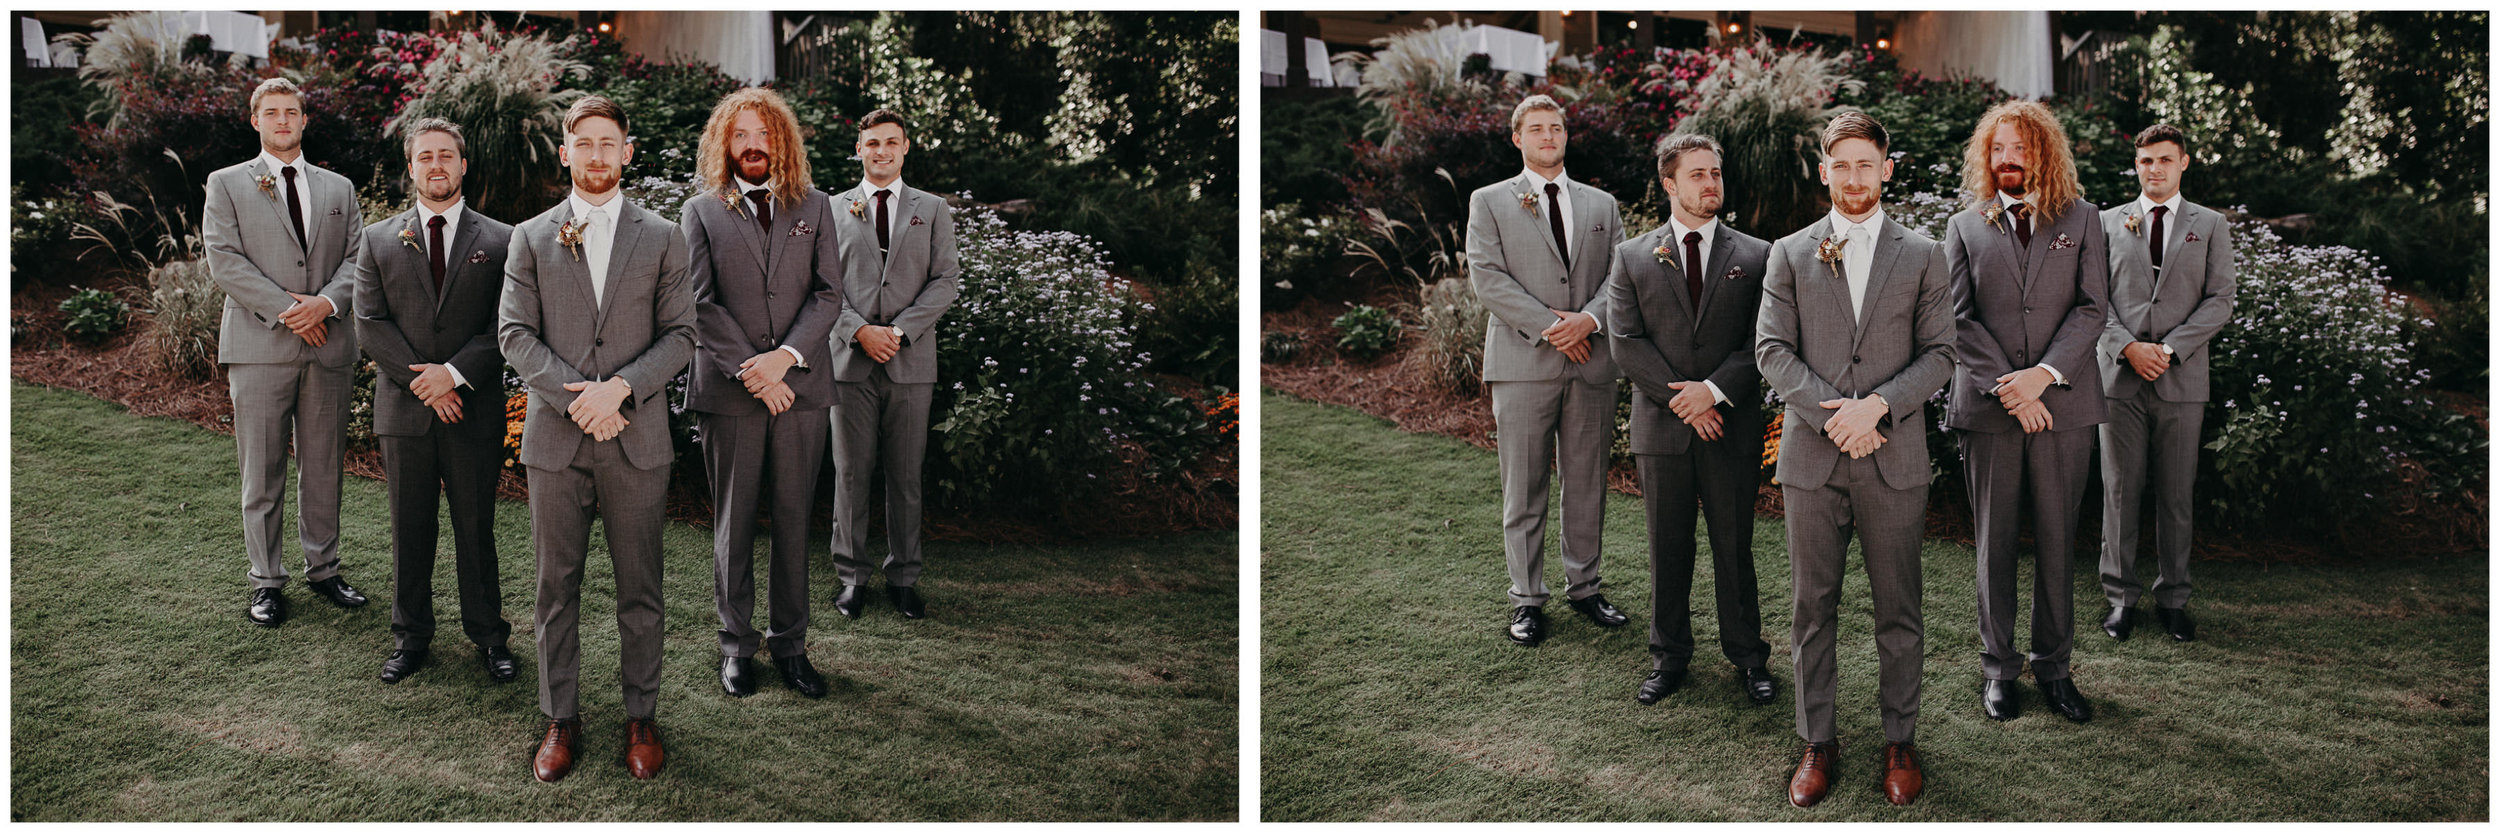 33 Groom getting ready pictures before ceremony- Weding day, Atlanta-Ga Photographer .jpg